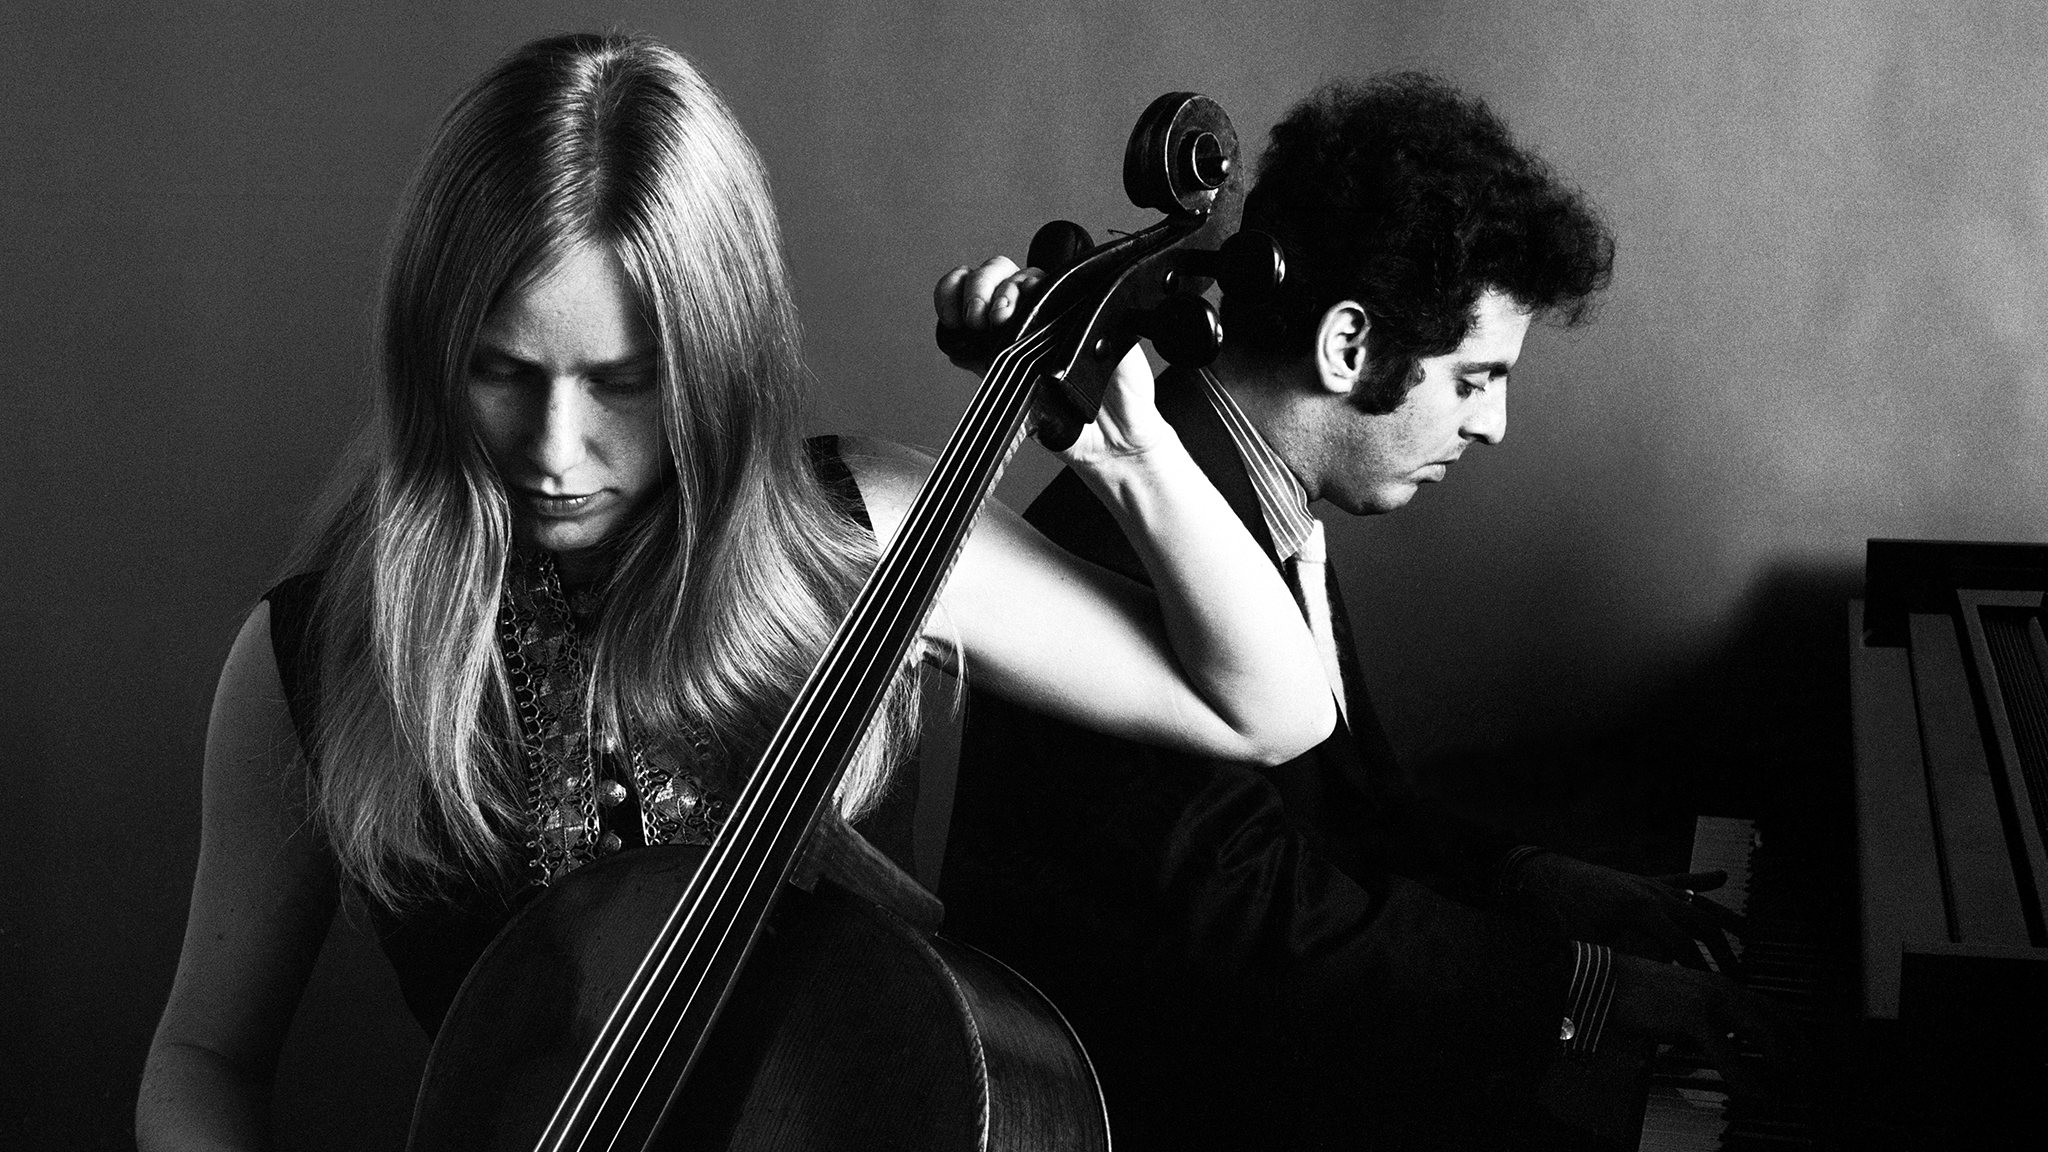 Portrait of Jacqueline Du Pre and Daniel Barenboim, 1960s. (Photo by Jack Robinson/Hulton Archive/Getty Images)